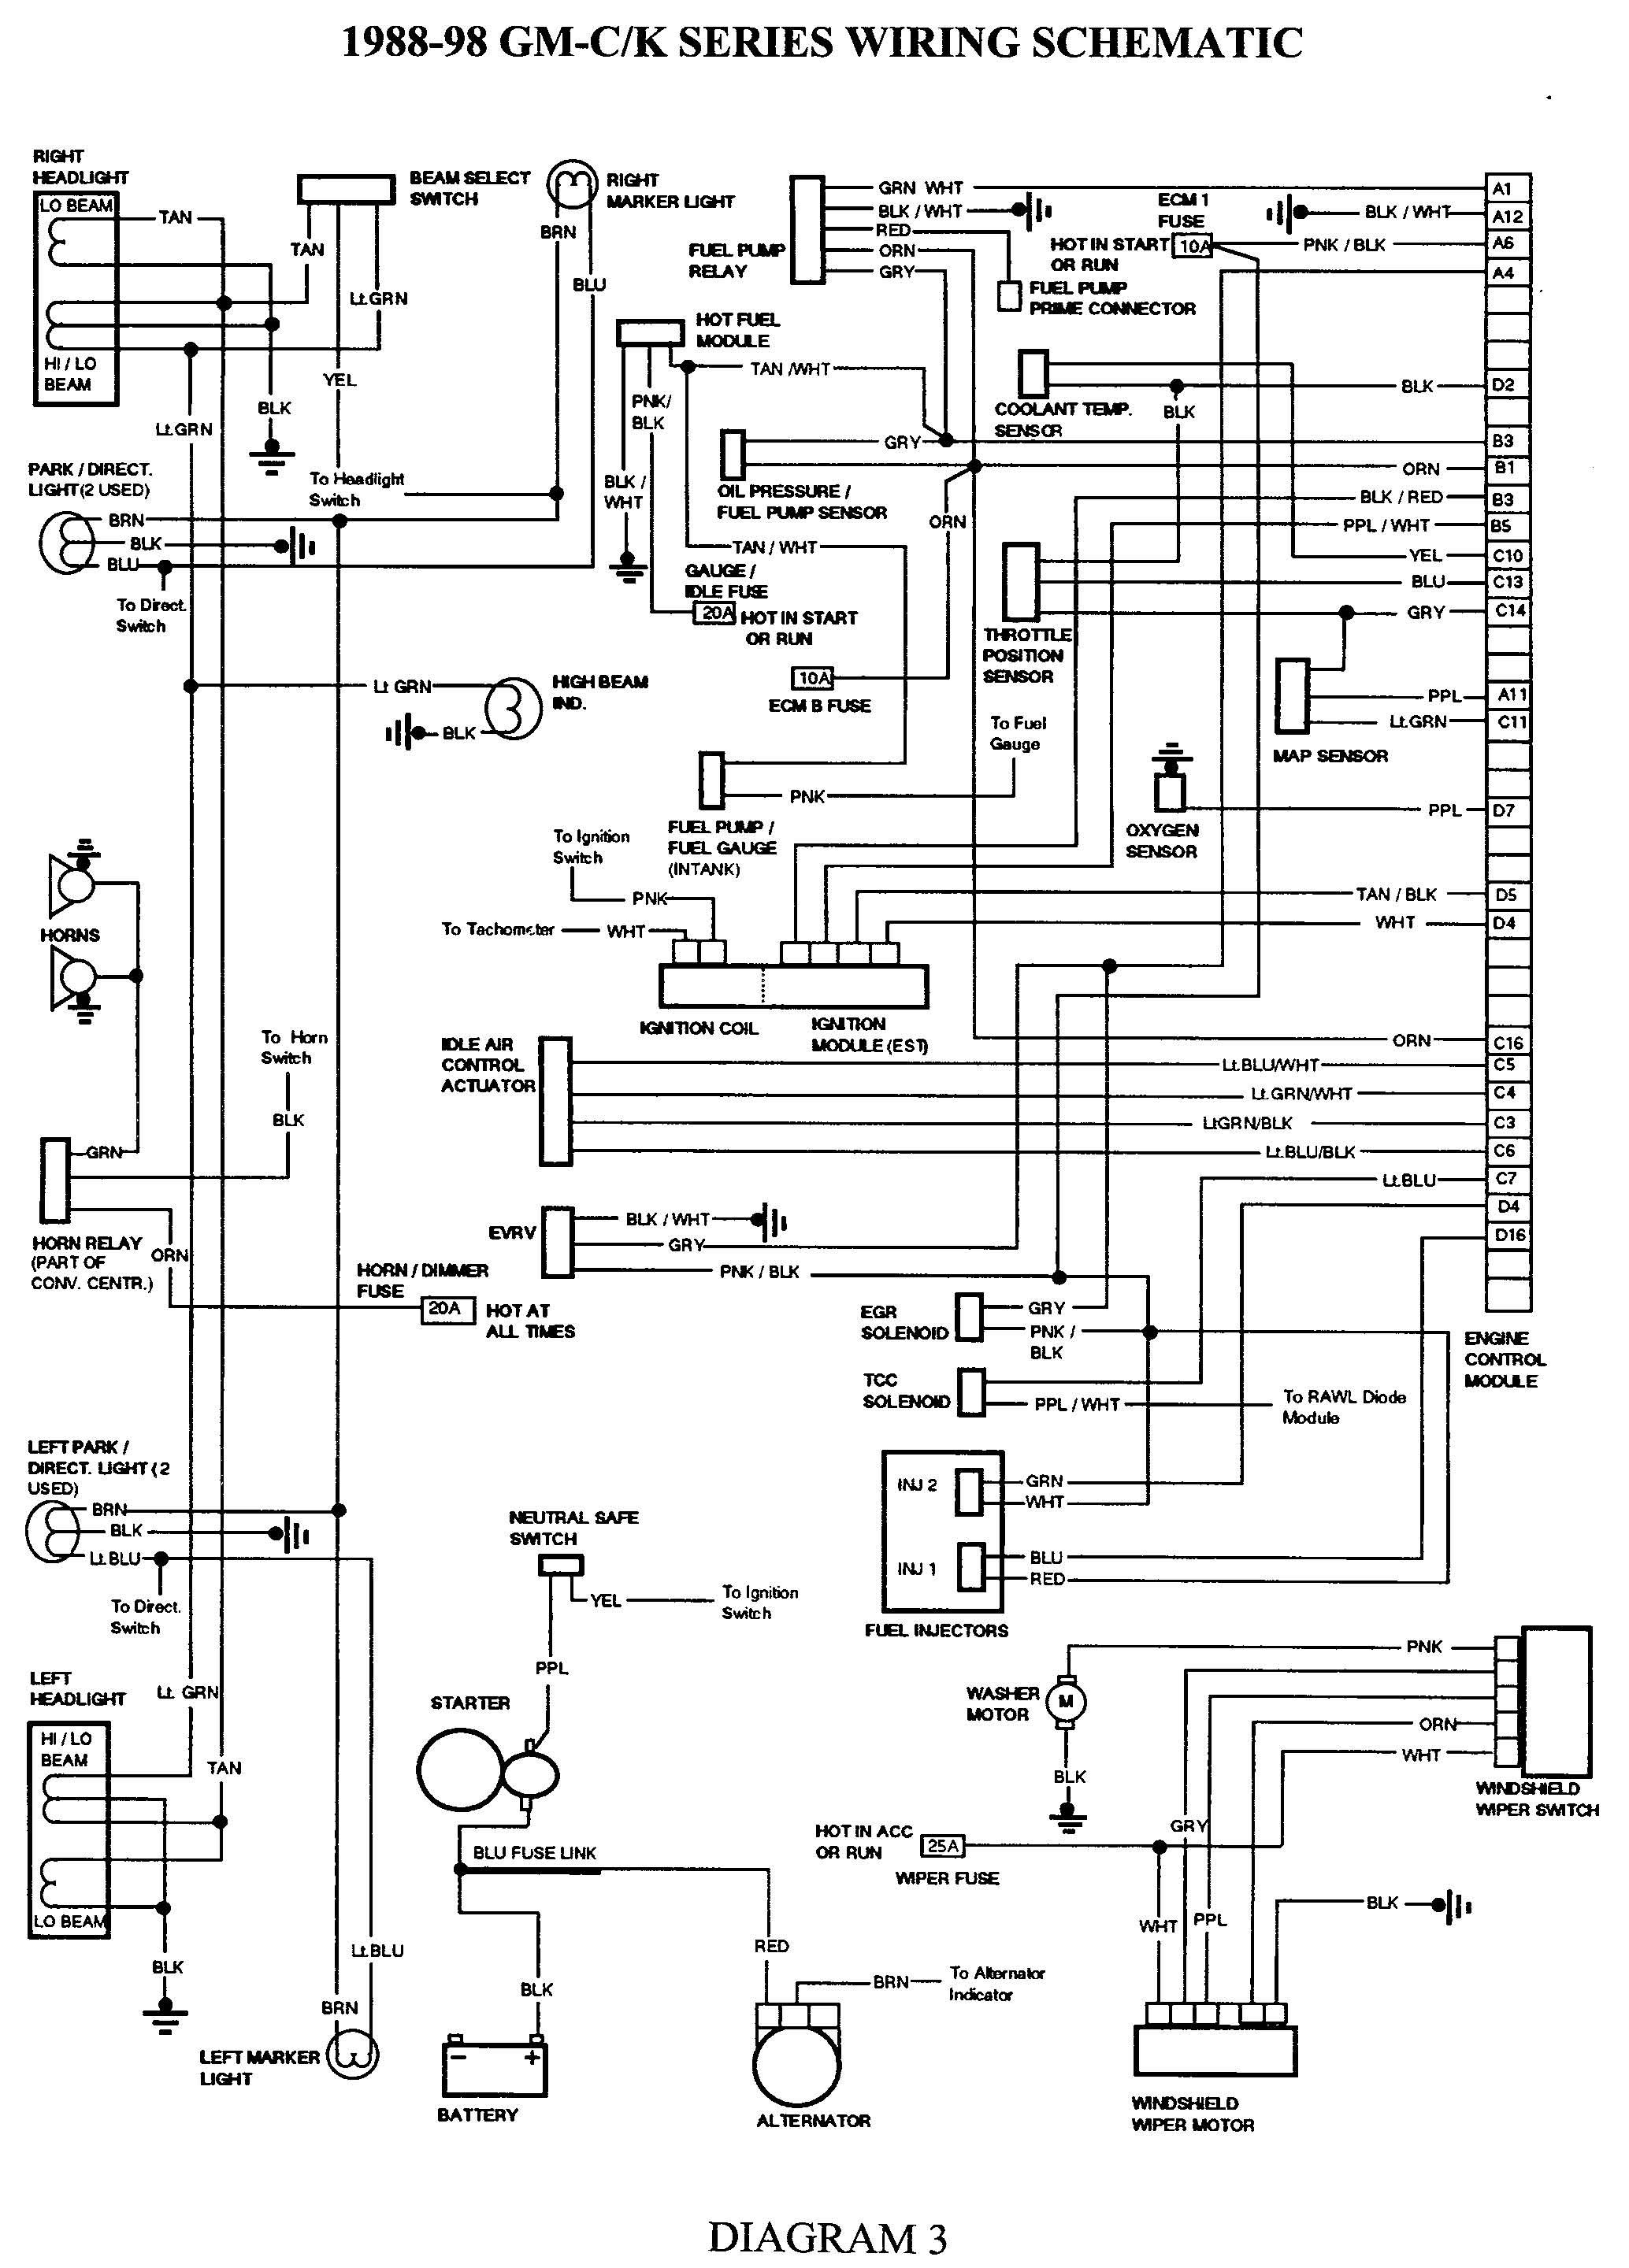 3500 Chevy 4x4 2007 Wiring Diagram Doing The New Way Eton Viper Jr 40cc Ignition Gmc Truck Diagrams On Gm Harness 88 98 Kc Rh Pinterest Com 1990 2006 Van